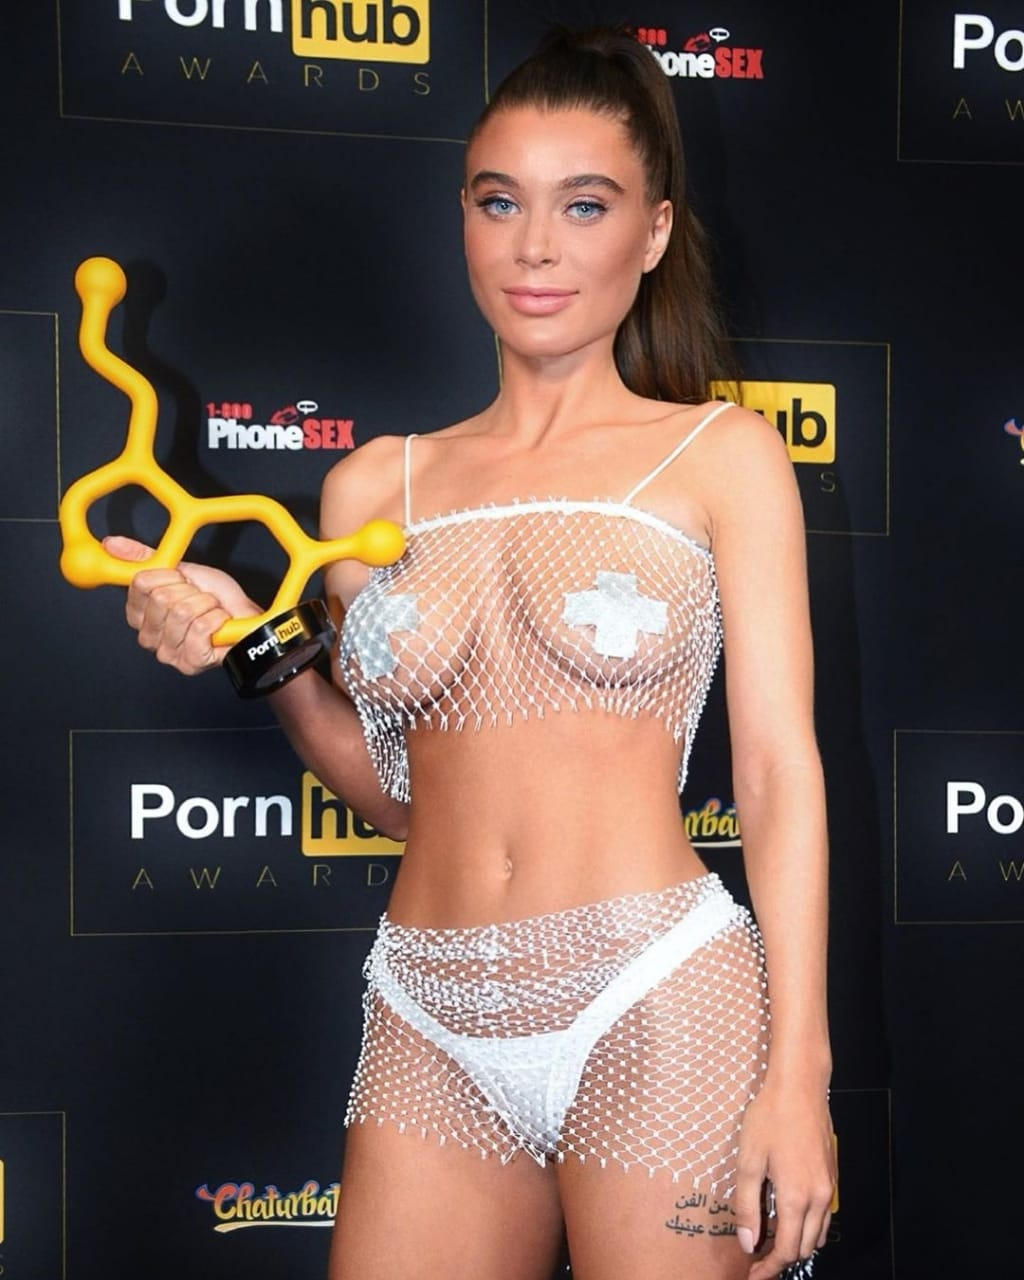 Pornhub star Lana Rhoades is one of the sexiest internet sensations